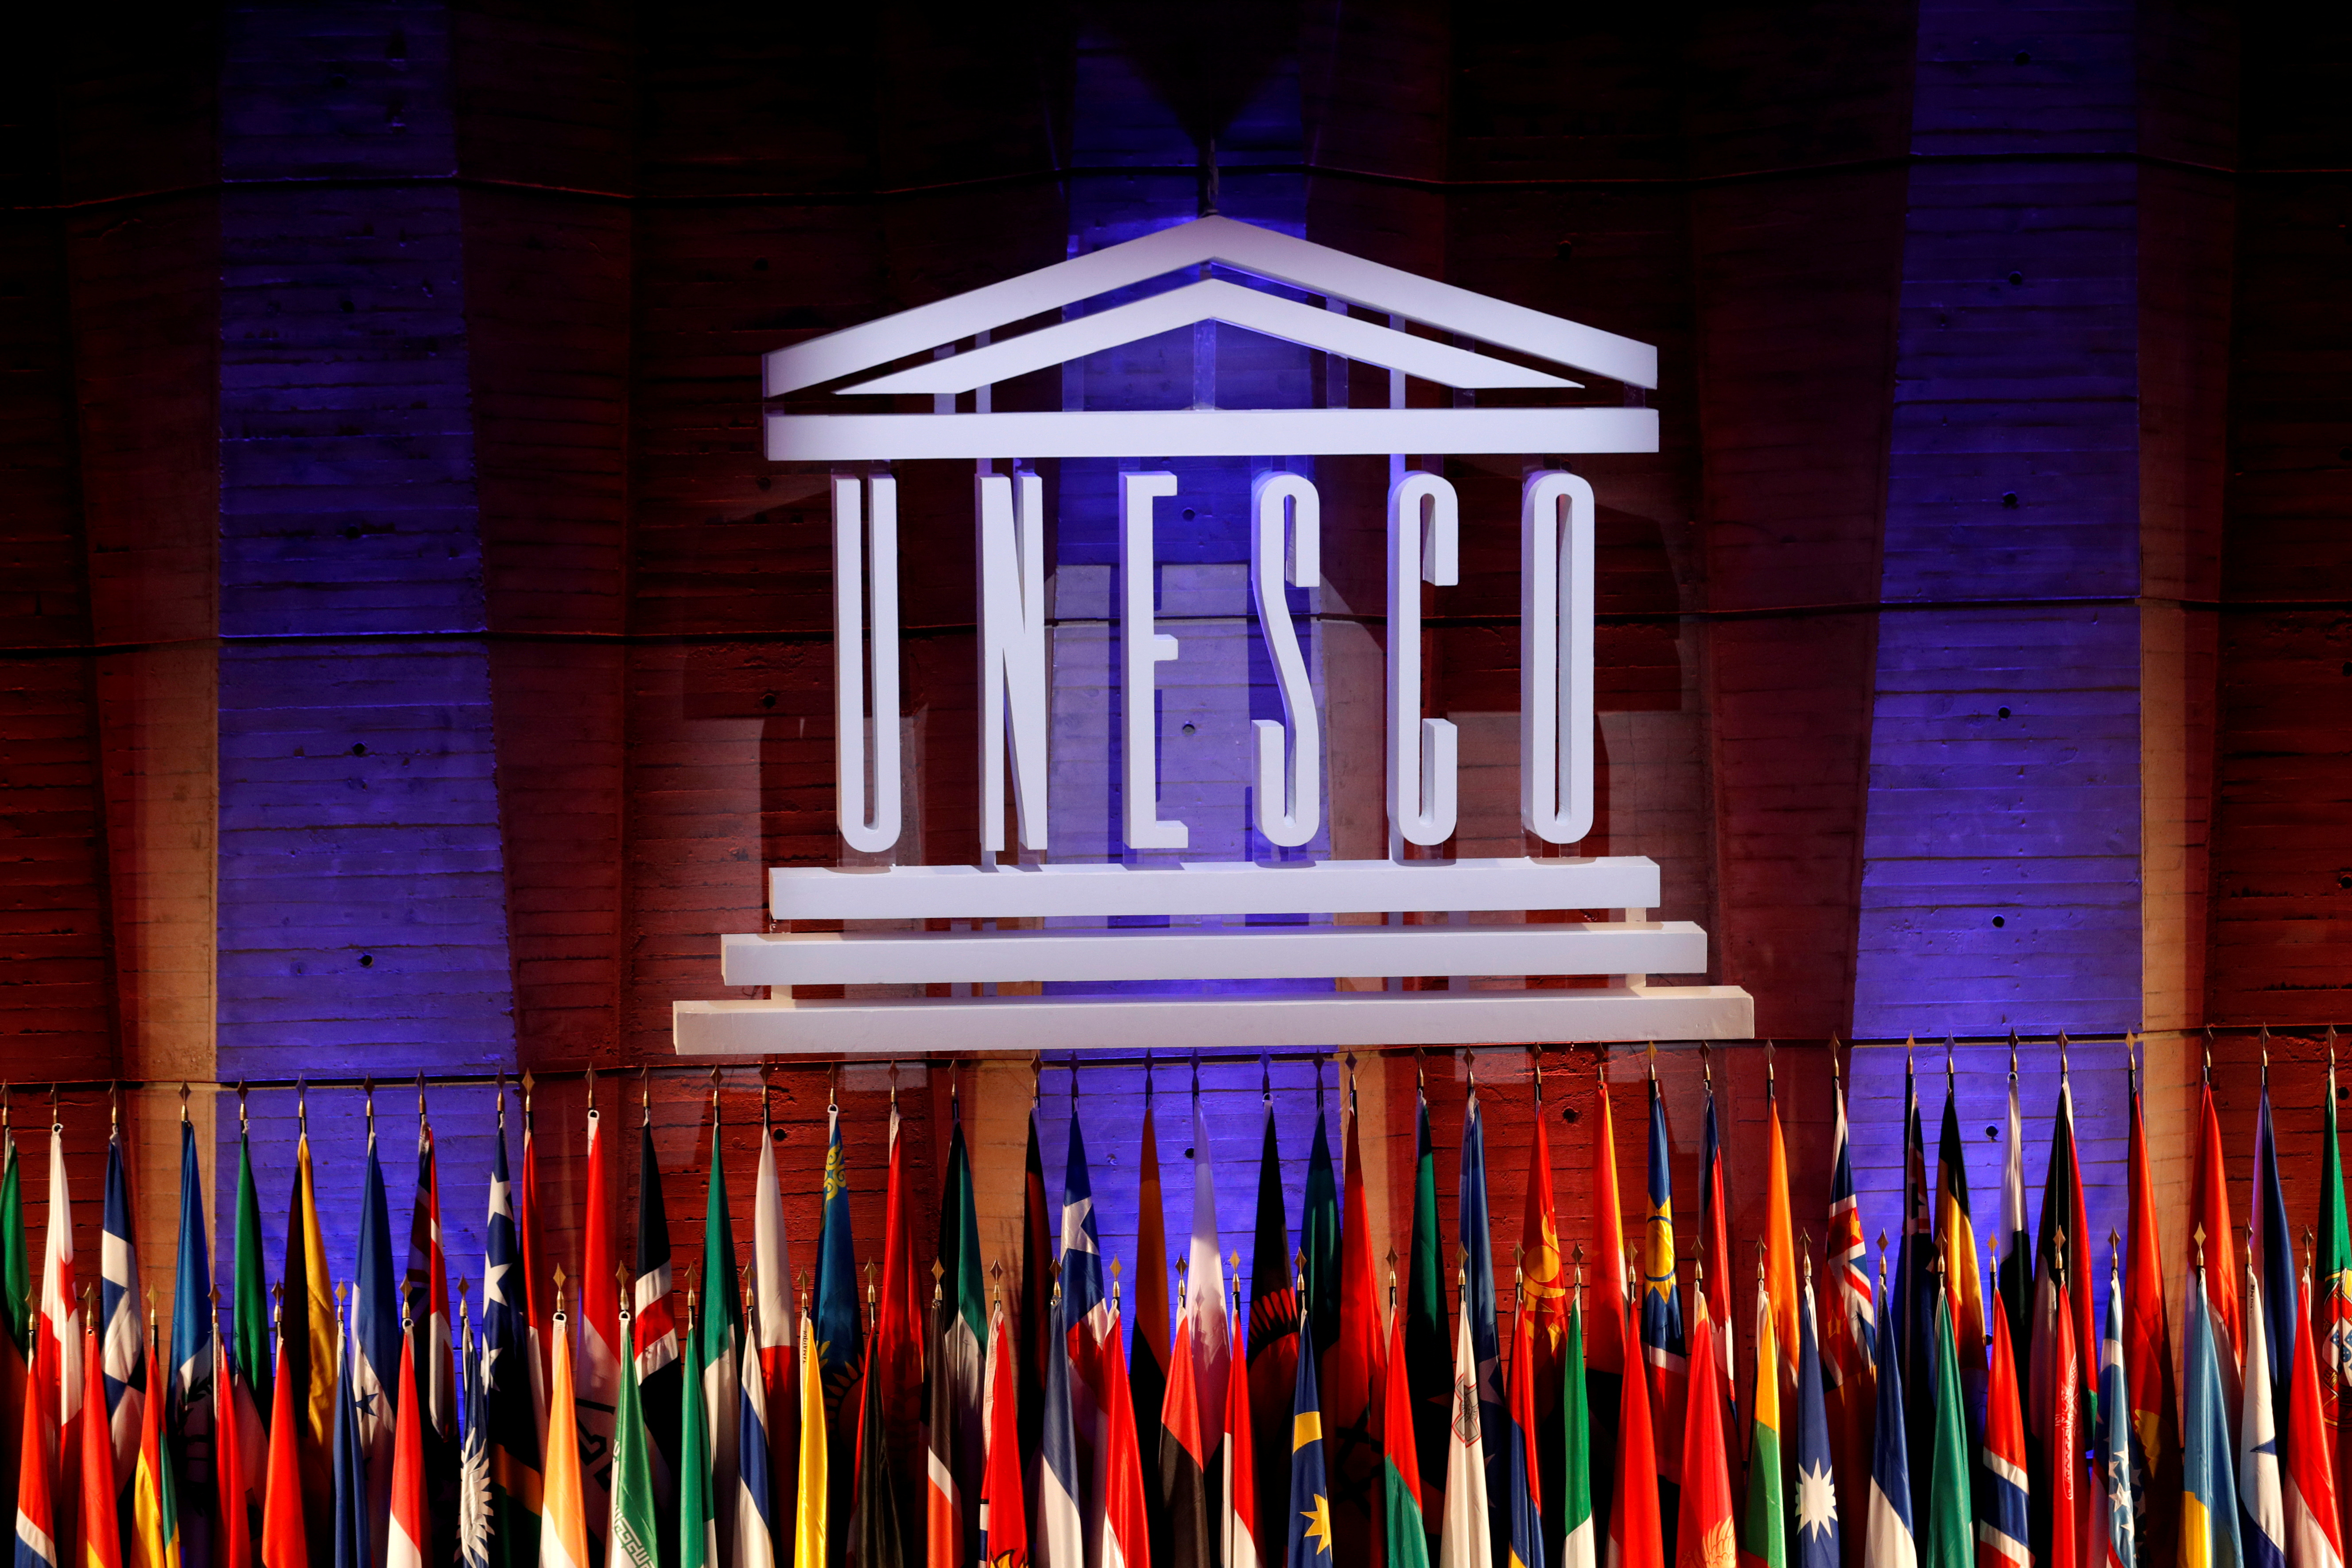 The UNESCO logo is seen during the opening of the 39th session of the General Conference of the United Nations Educational, Scientific and Cultural Organization (UNESCO) at their headquarters in Paris, France, October 30, 2017. REUTERS/Philippe Wojazer/File Photo